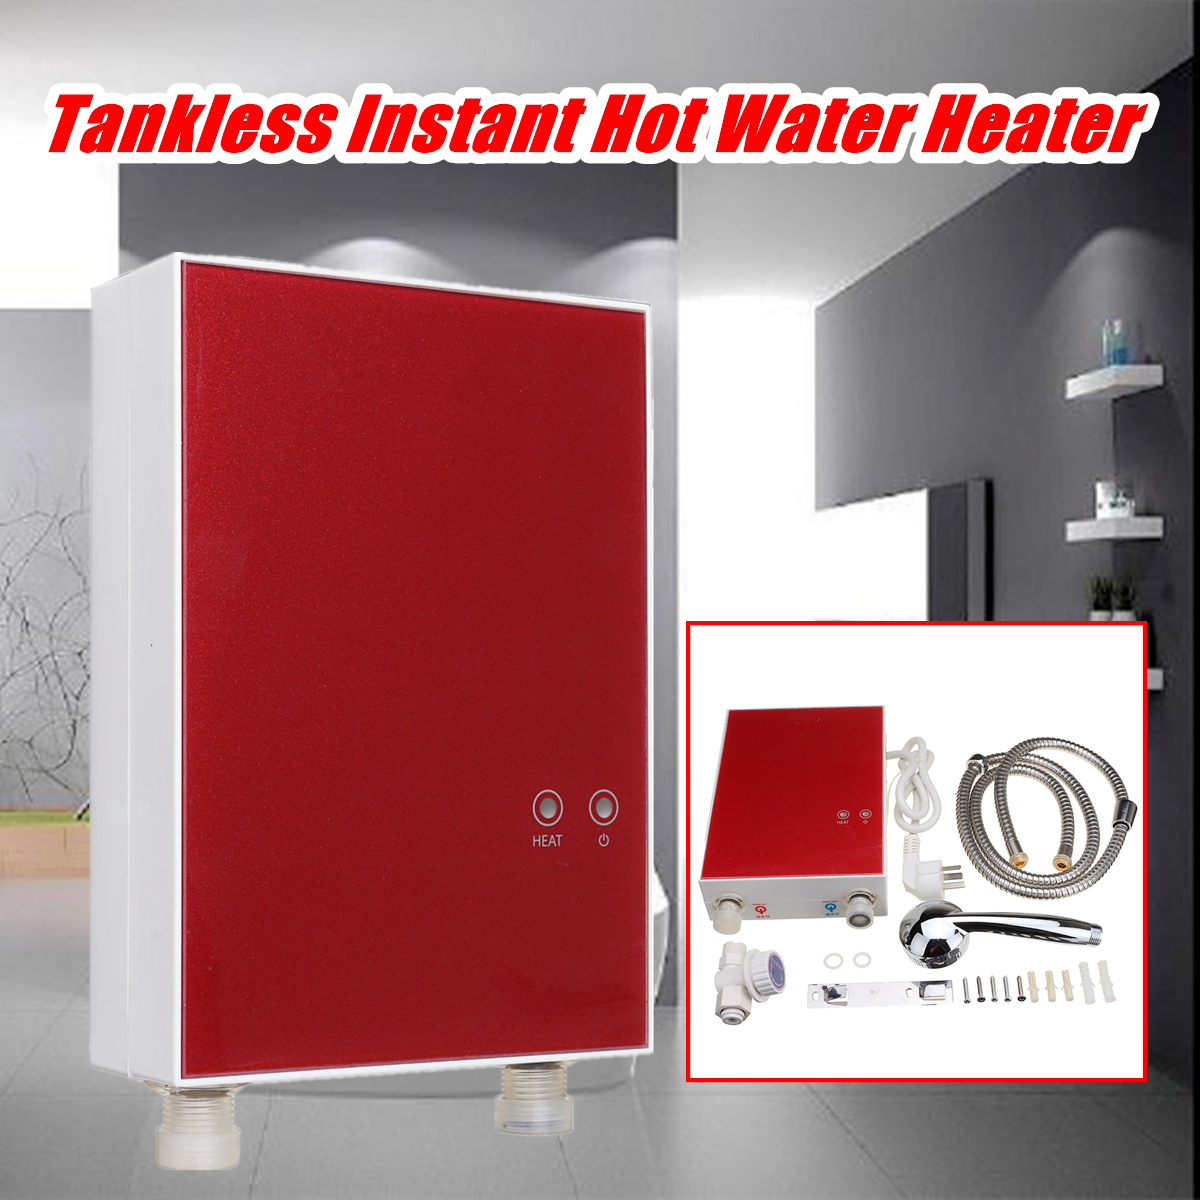 Home Instant heat Electric Water Heater Kitchen Tankless Boiler System 220V 3500W LCD Digital Under sink